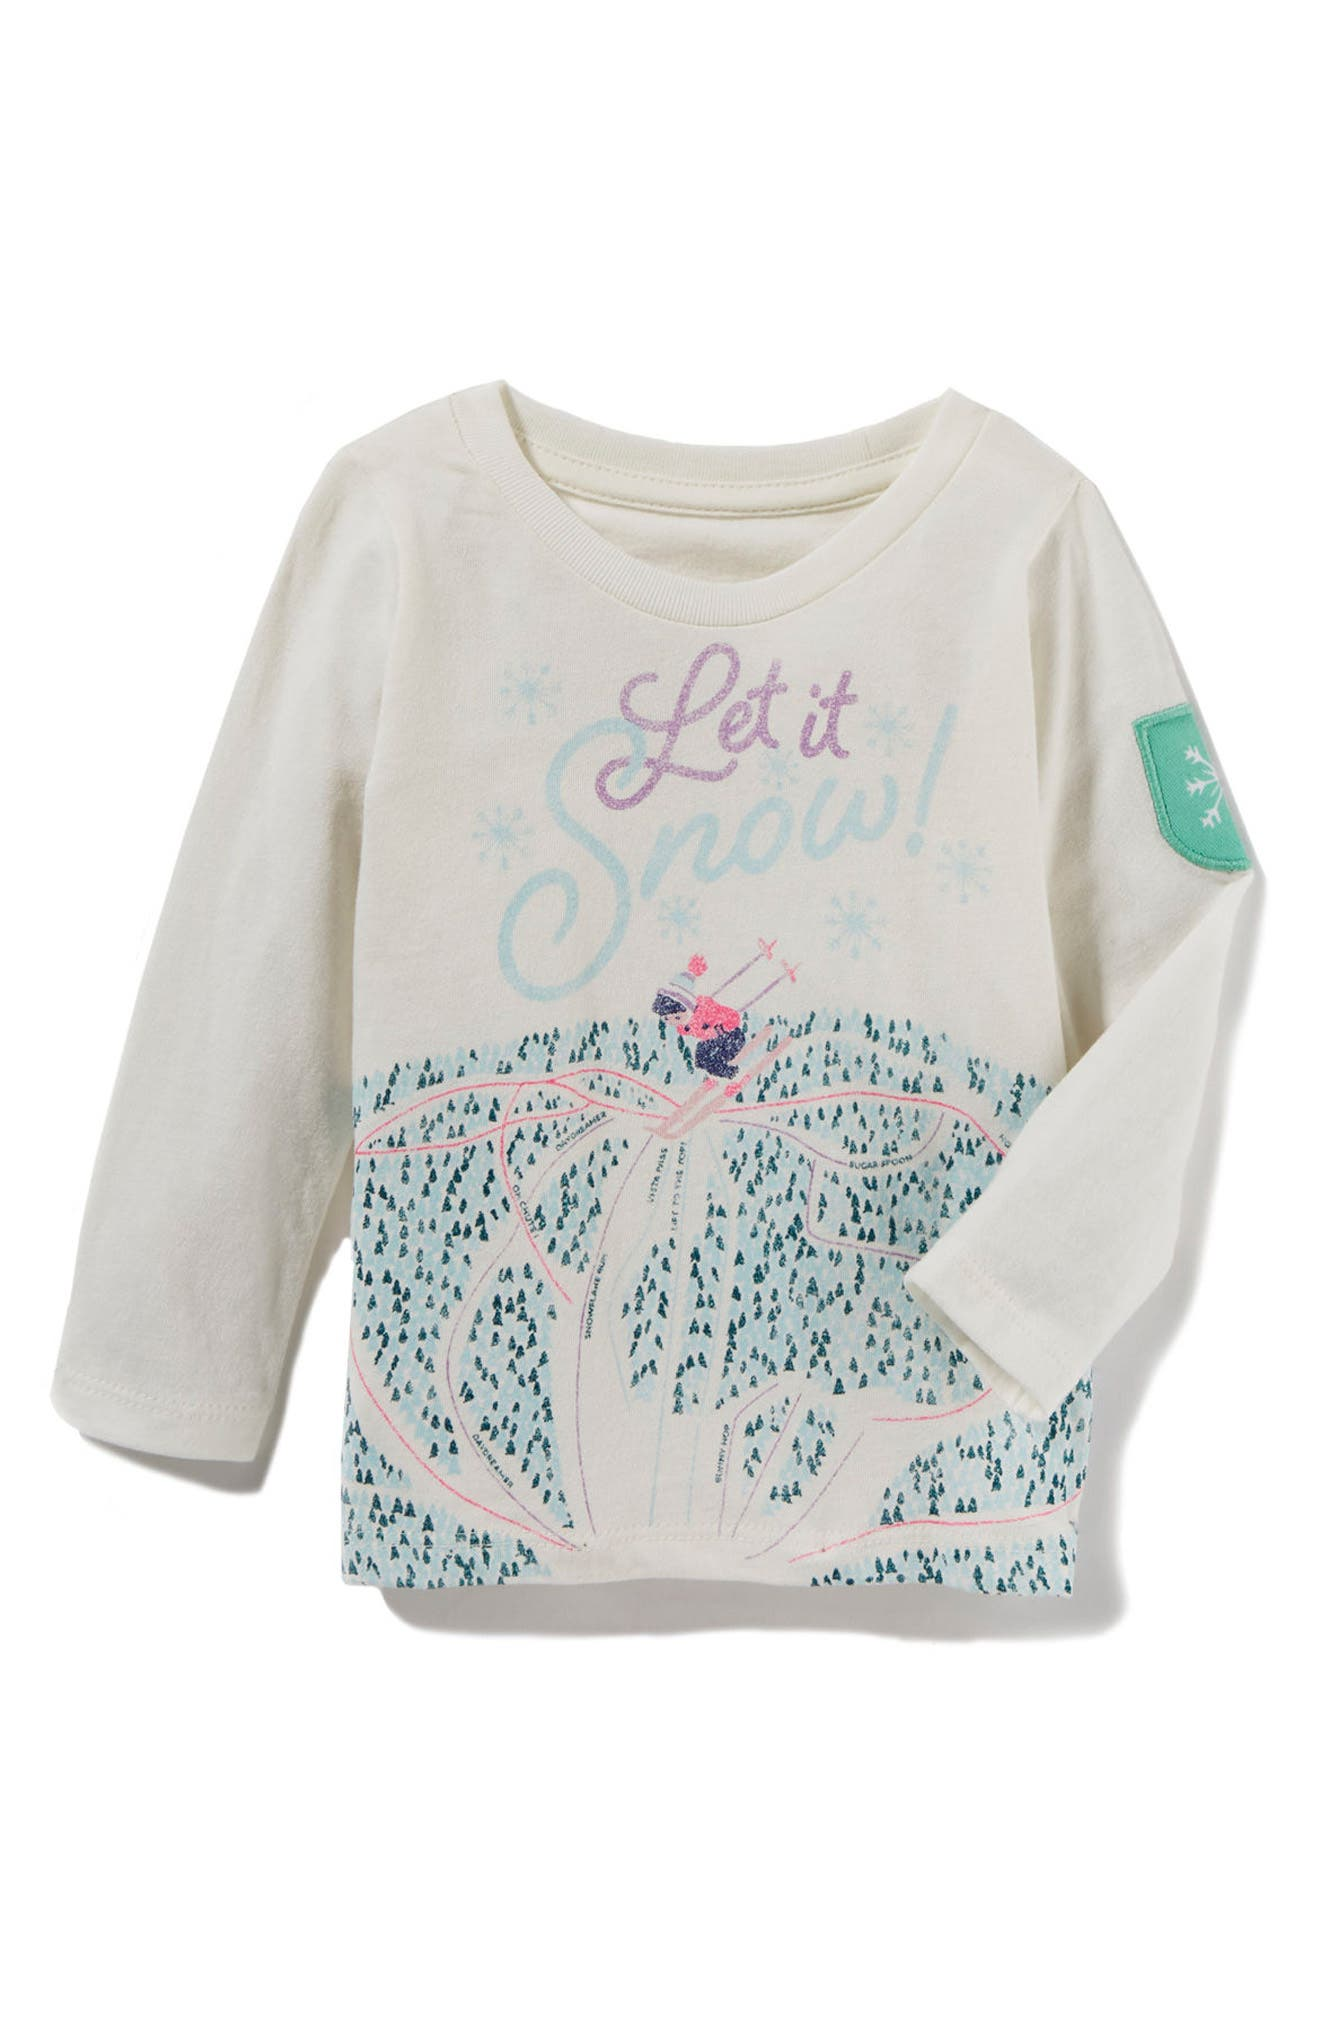 Main Image - Peek Let It Snow Graphic Tee (Baby Girls)